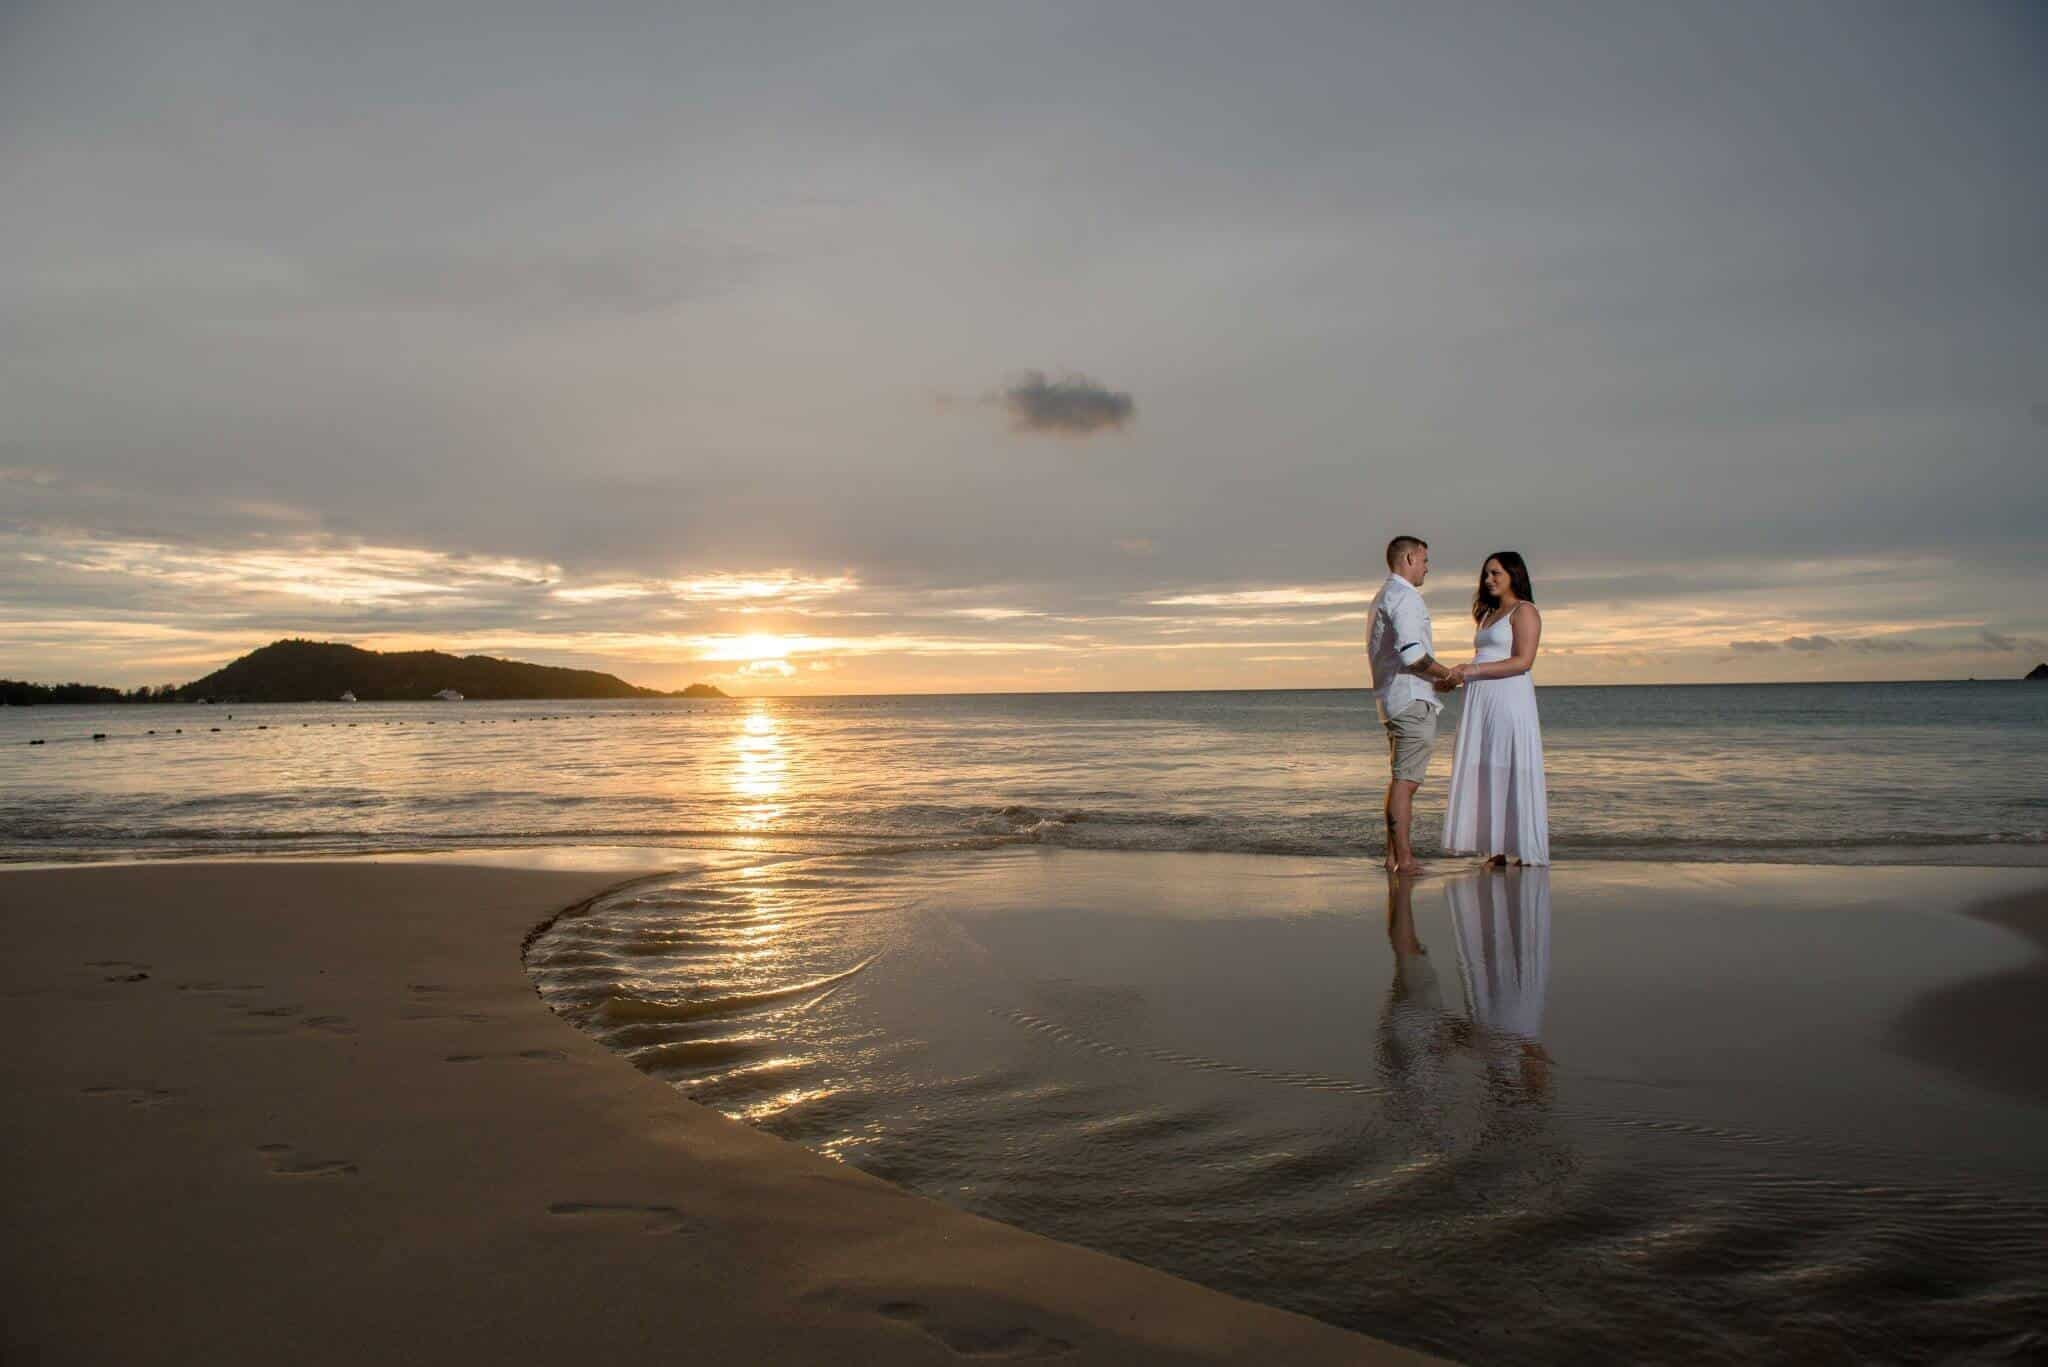 Phuket Beach Wedding Photoshoot